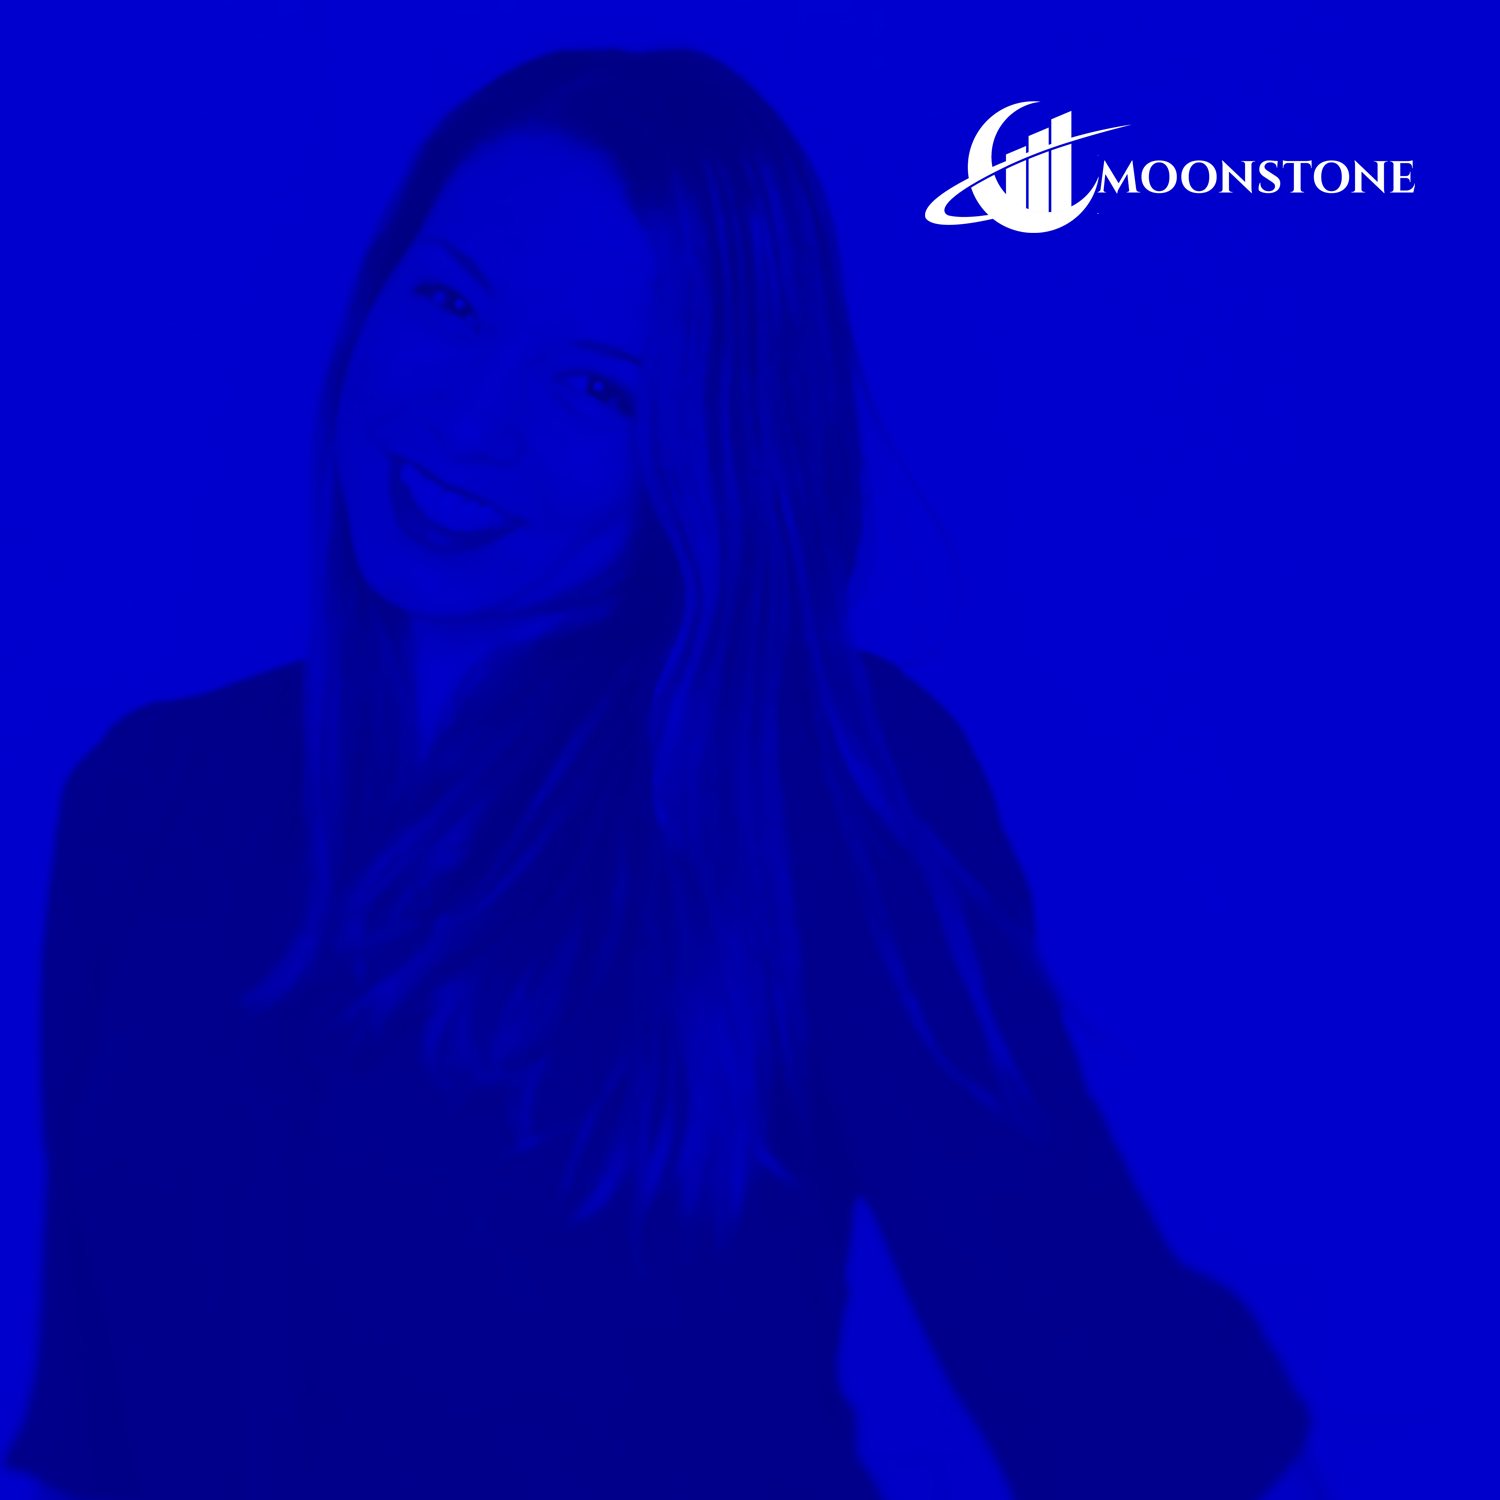 Moonstone Pros is an accounting firm with a highly social & hands-on approach.  - Katherine, founder of Moonstone Pros, had been sharing IGTV content and insightful content on Instagram but felt stuck regarding if what she was doing made sense or not. She wanted to gain a deeper understanding on how to best serve her audience and develop a plan to deliver content.